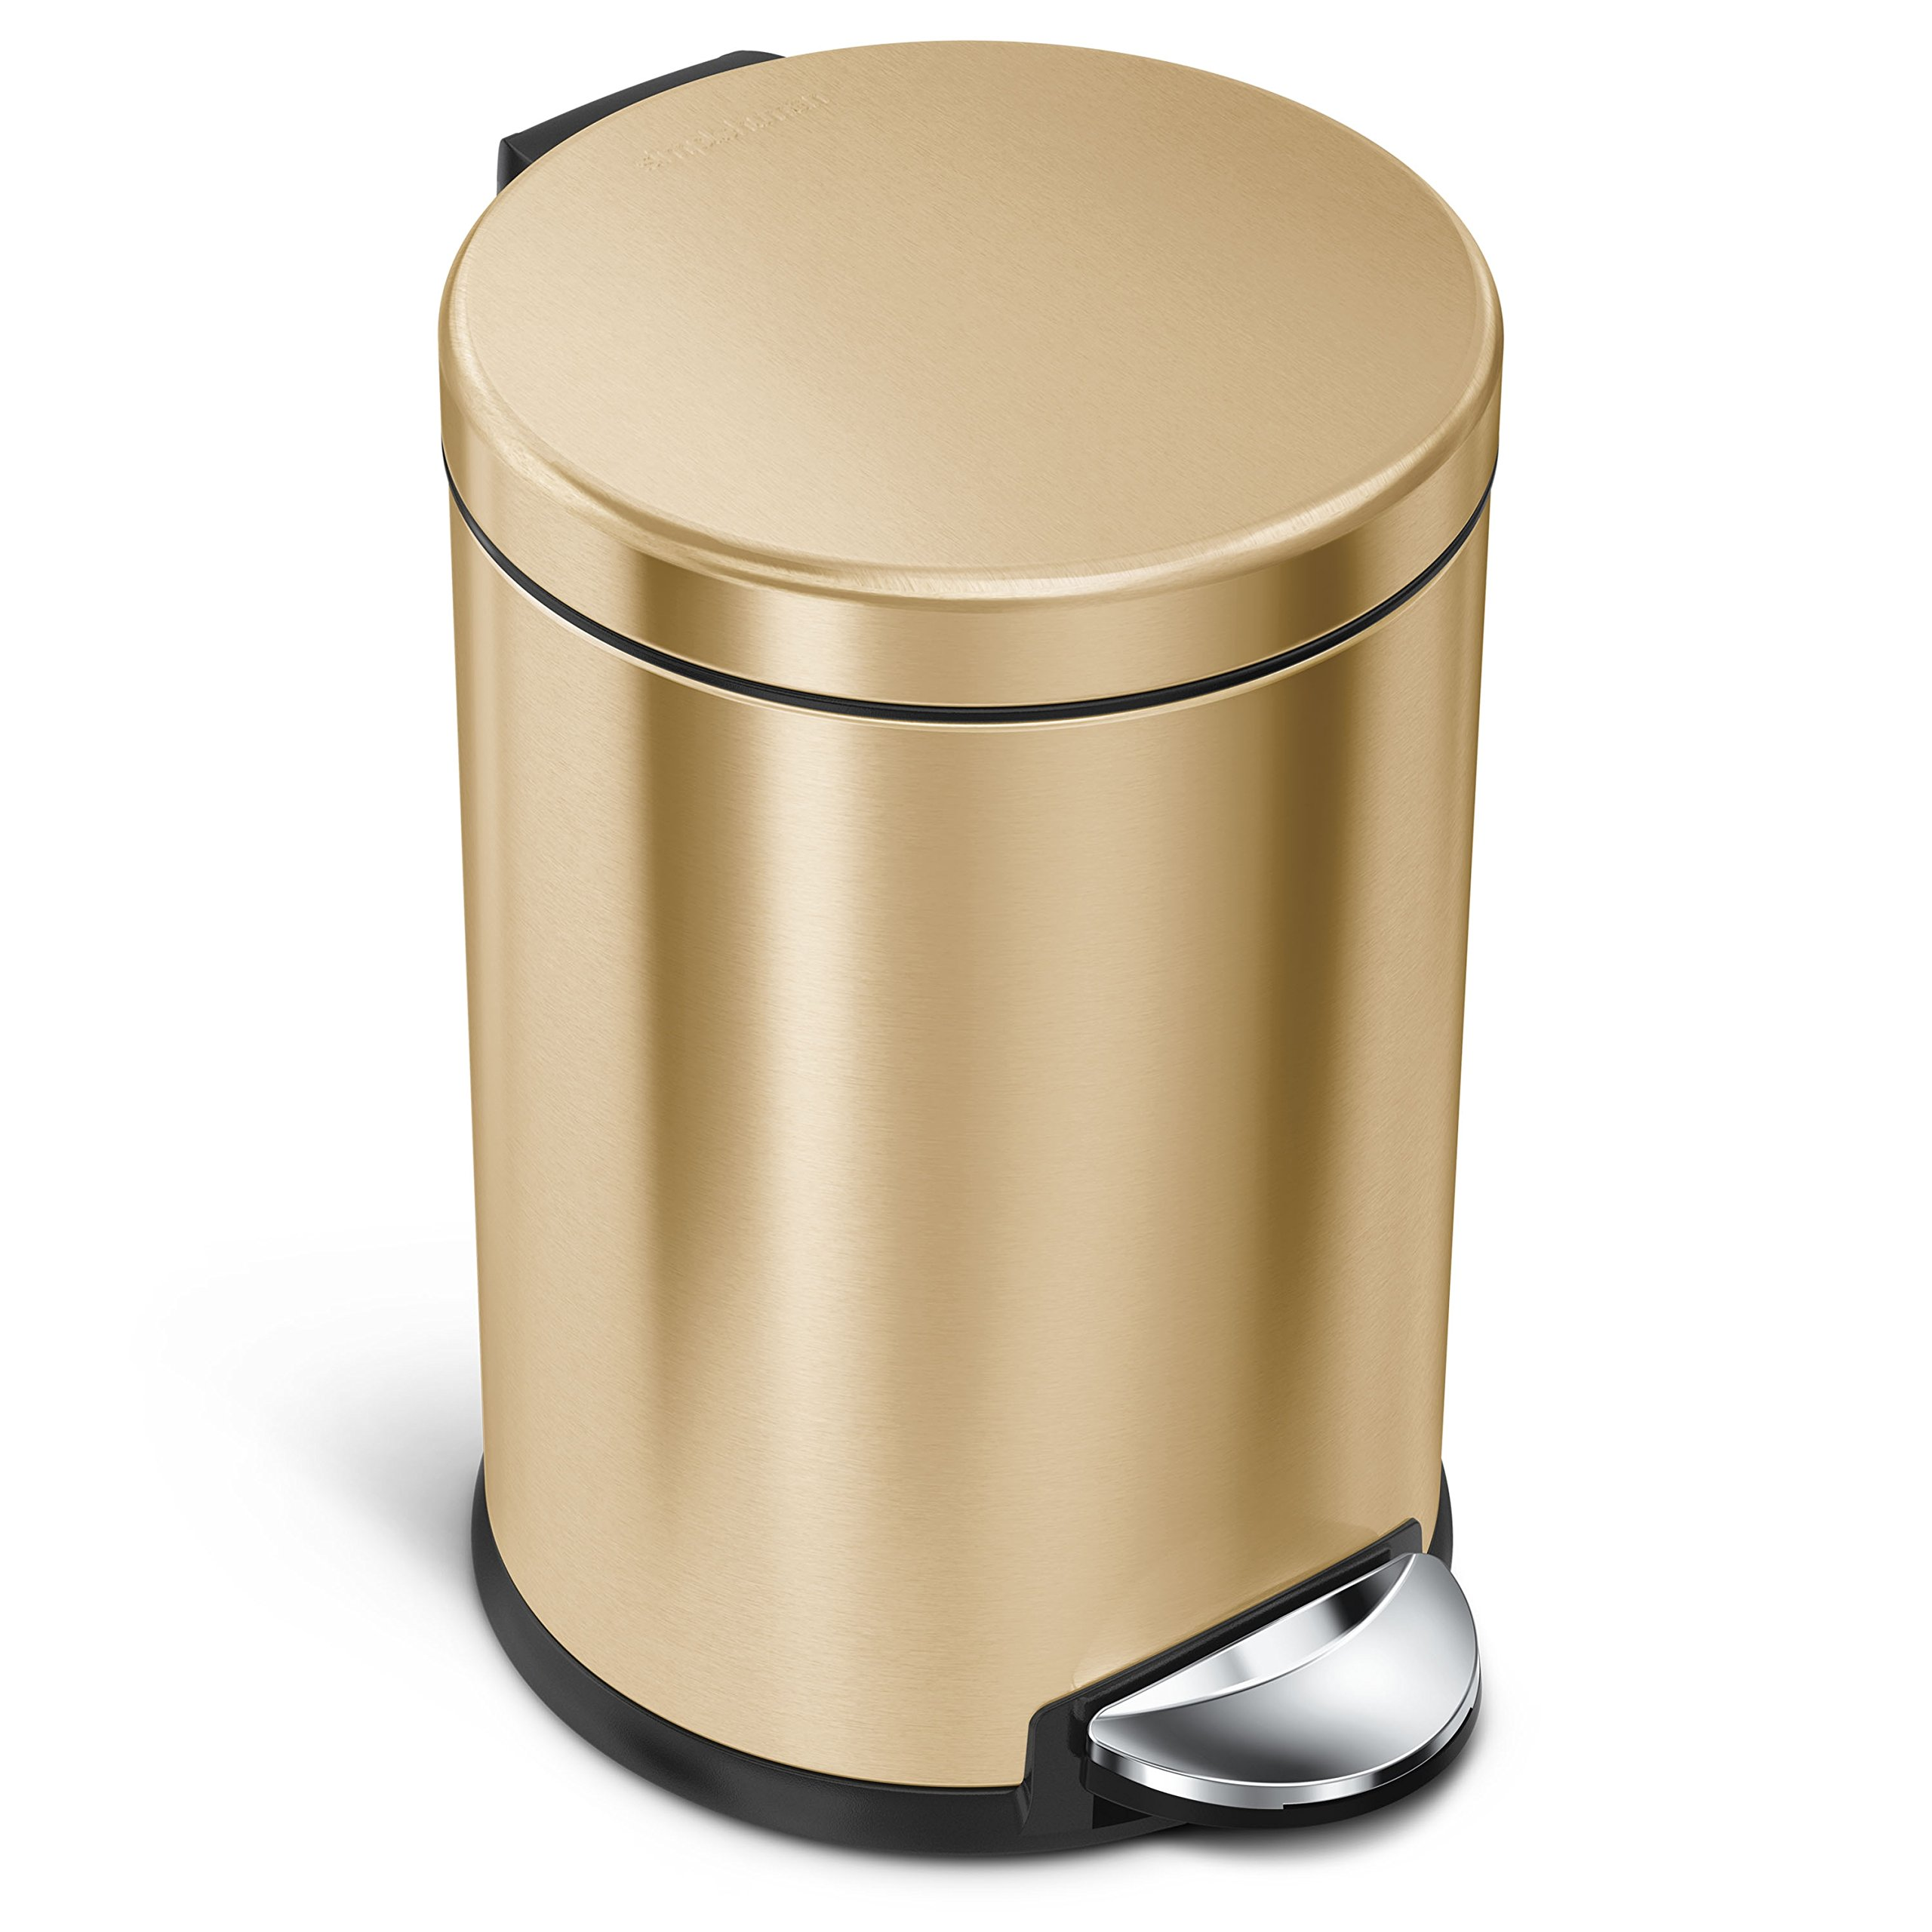 simplehuman round step trash can, 4.5 litre, Brass Stainless Steel by simplehuman